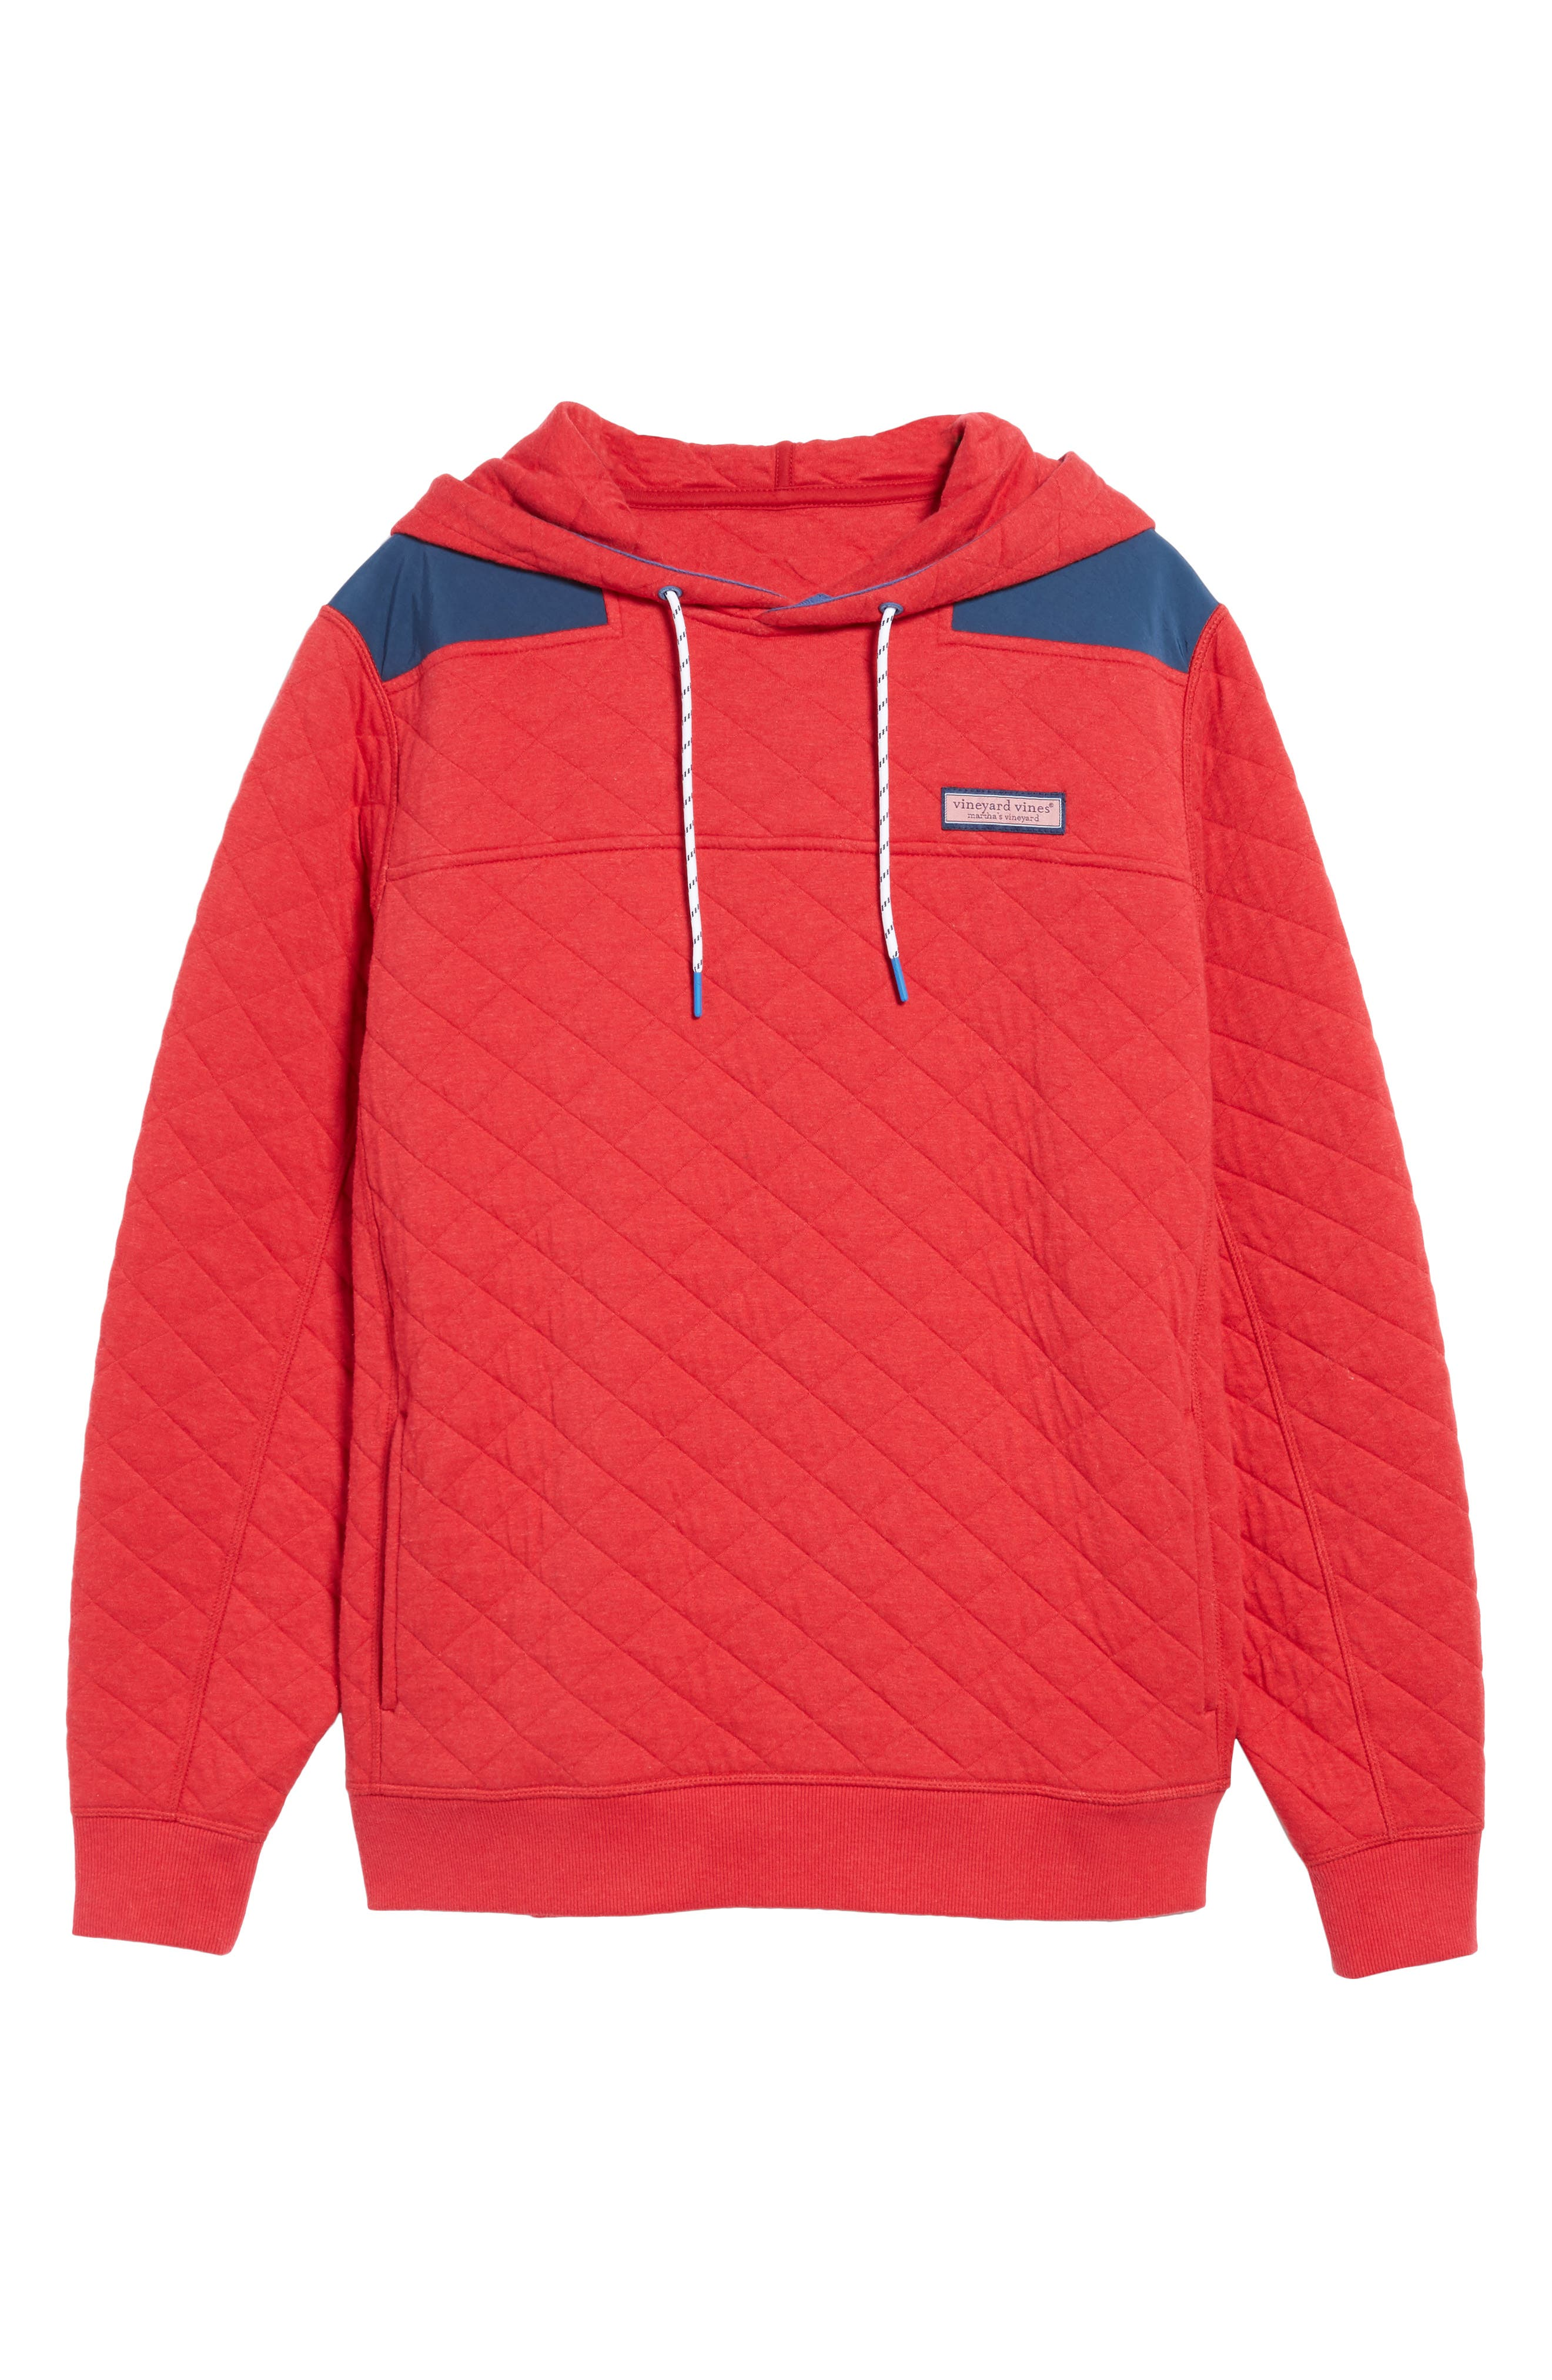 Shep Quilted Hoodie,                             Alternate thumbnail 6, color,                             639